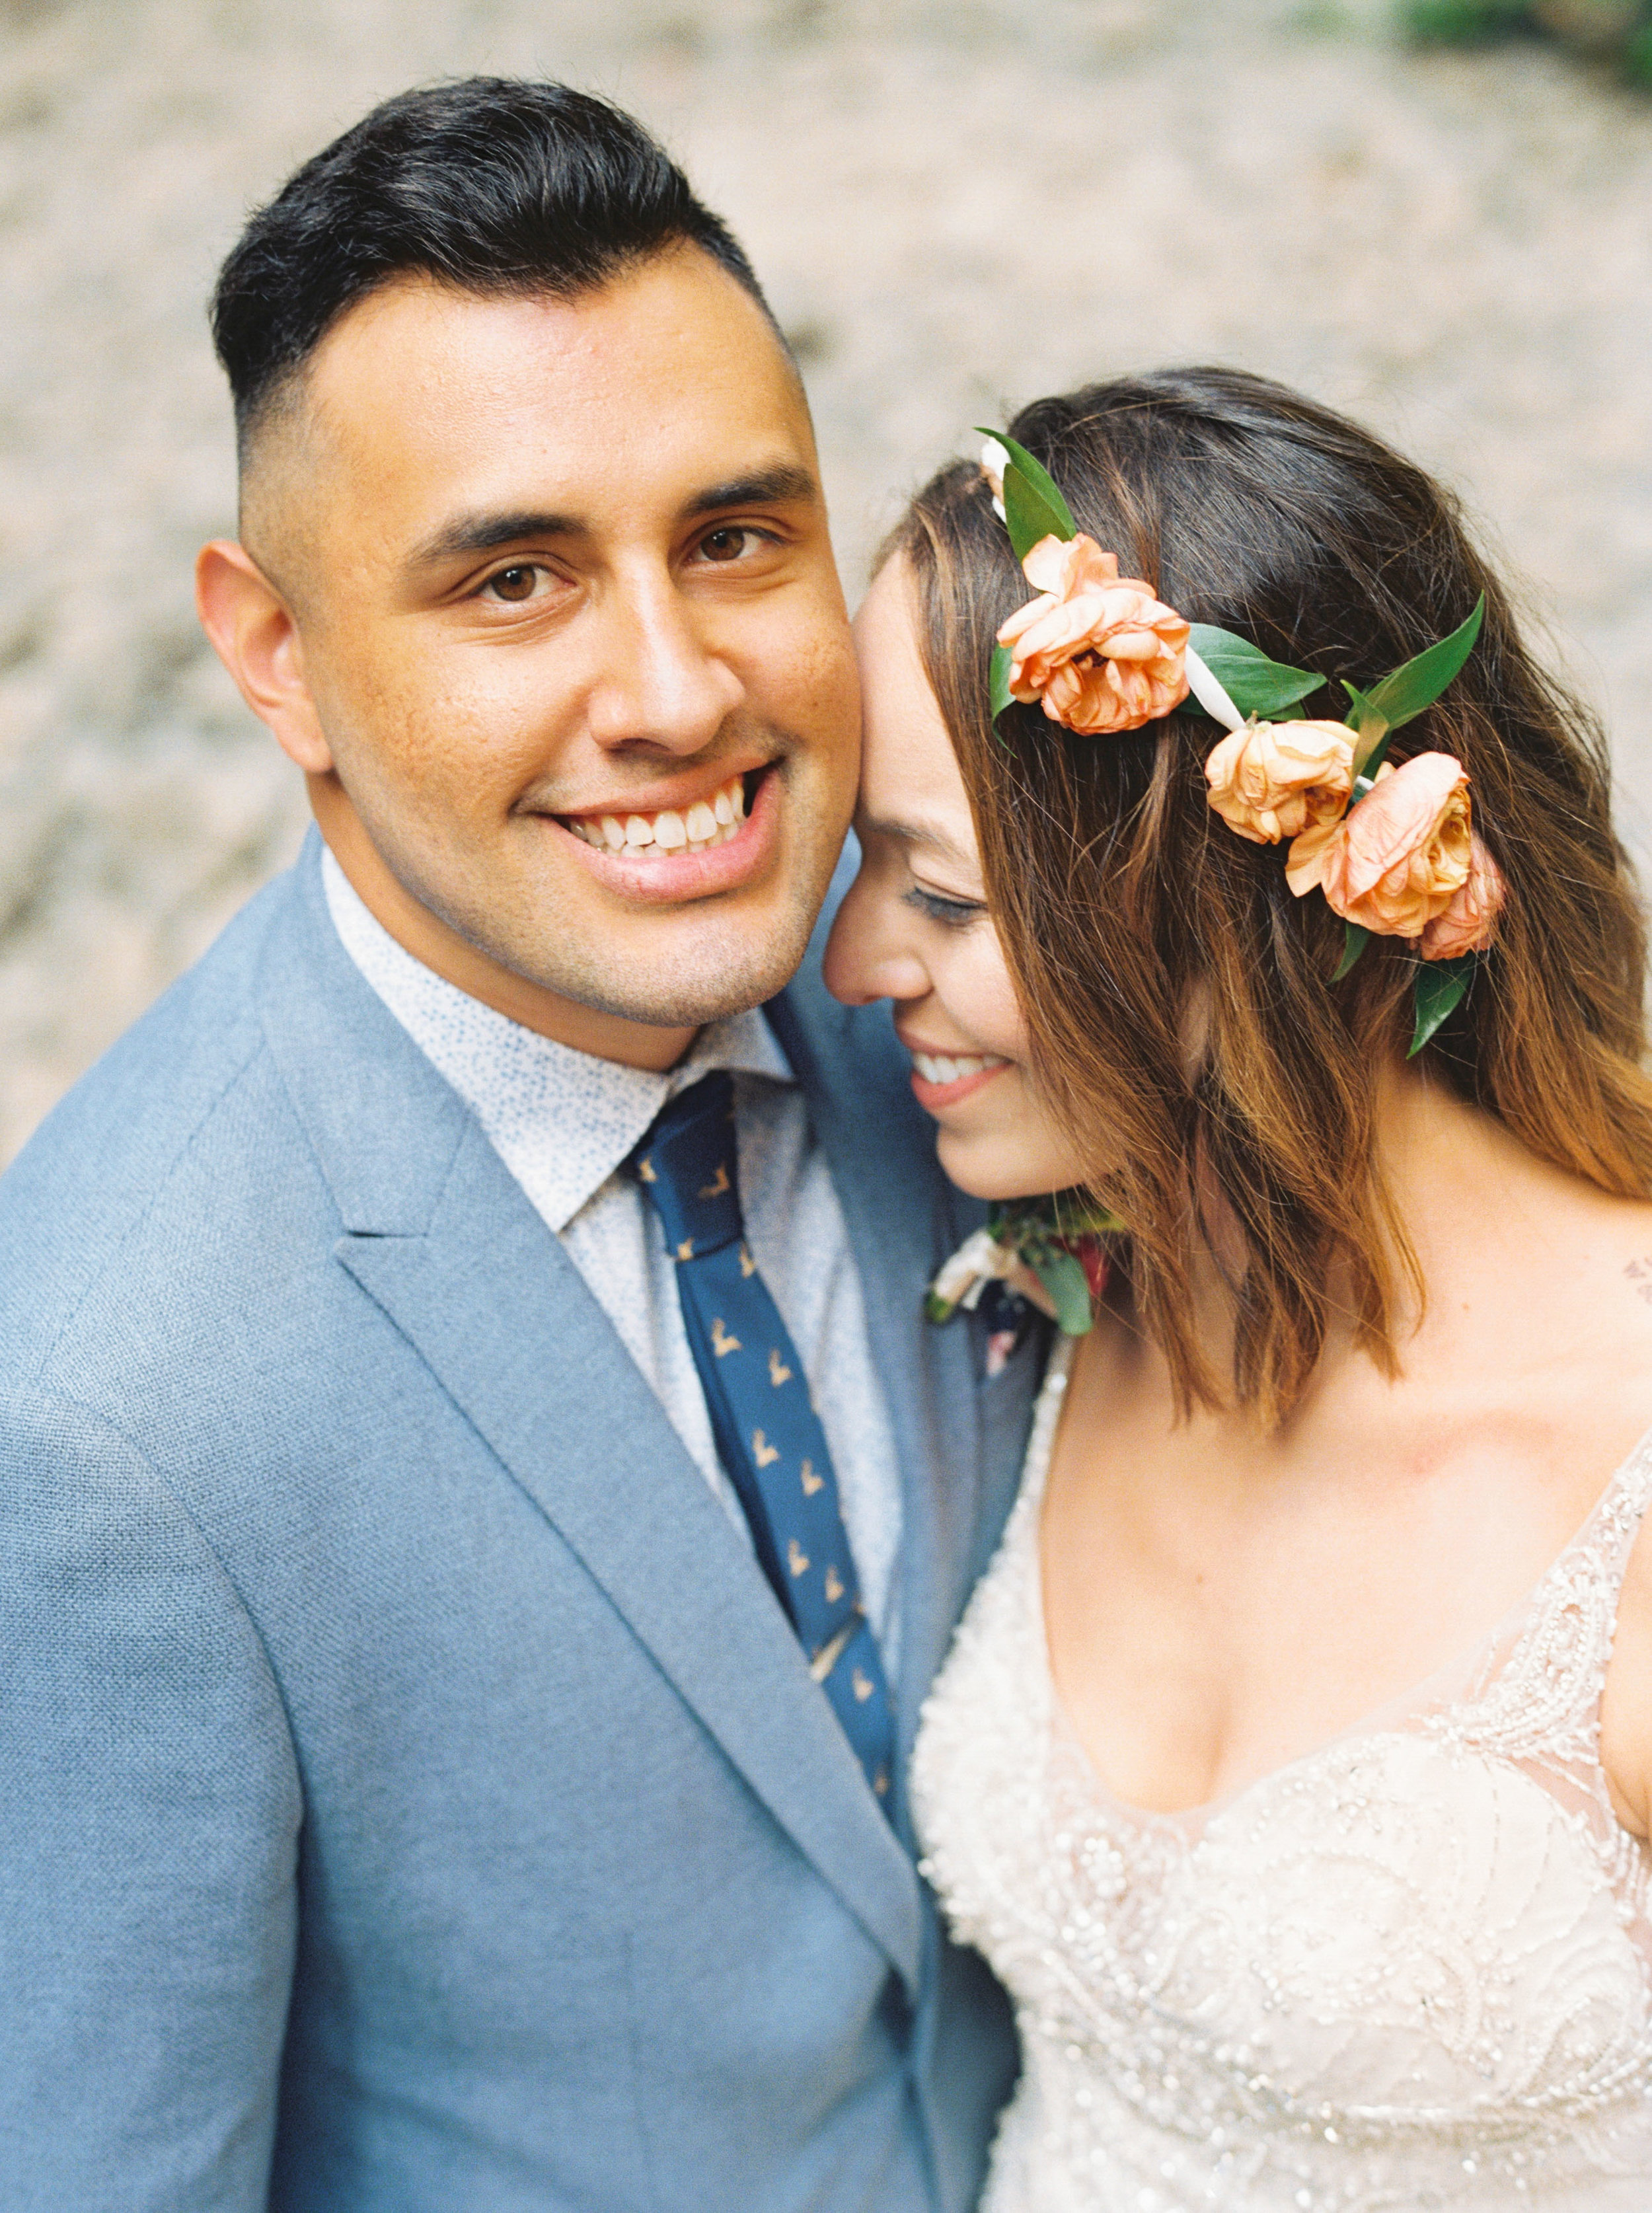 abiqua_falls_elopement_wedding_oregon_photographer_videographer_091.jpg